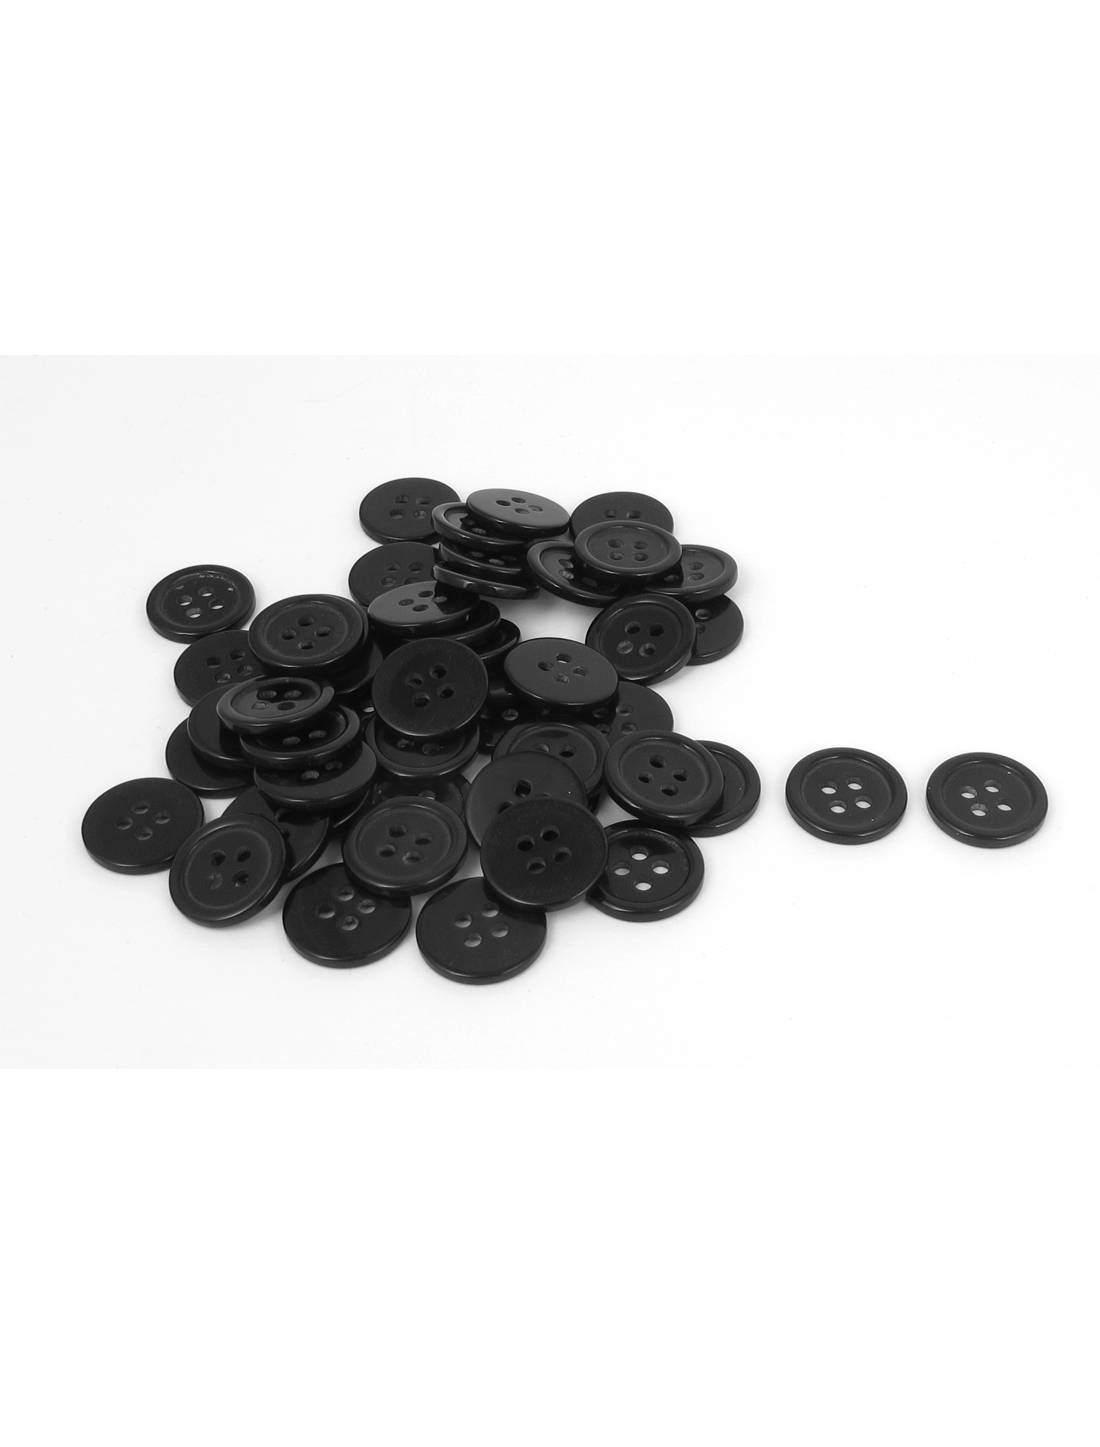 50pcs Black Round Resin Buttons 4 Holes Clothing Button Scrapbooking Sewing 1.3cm